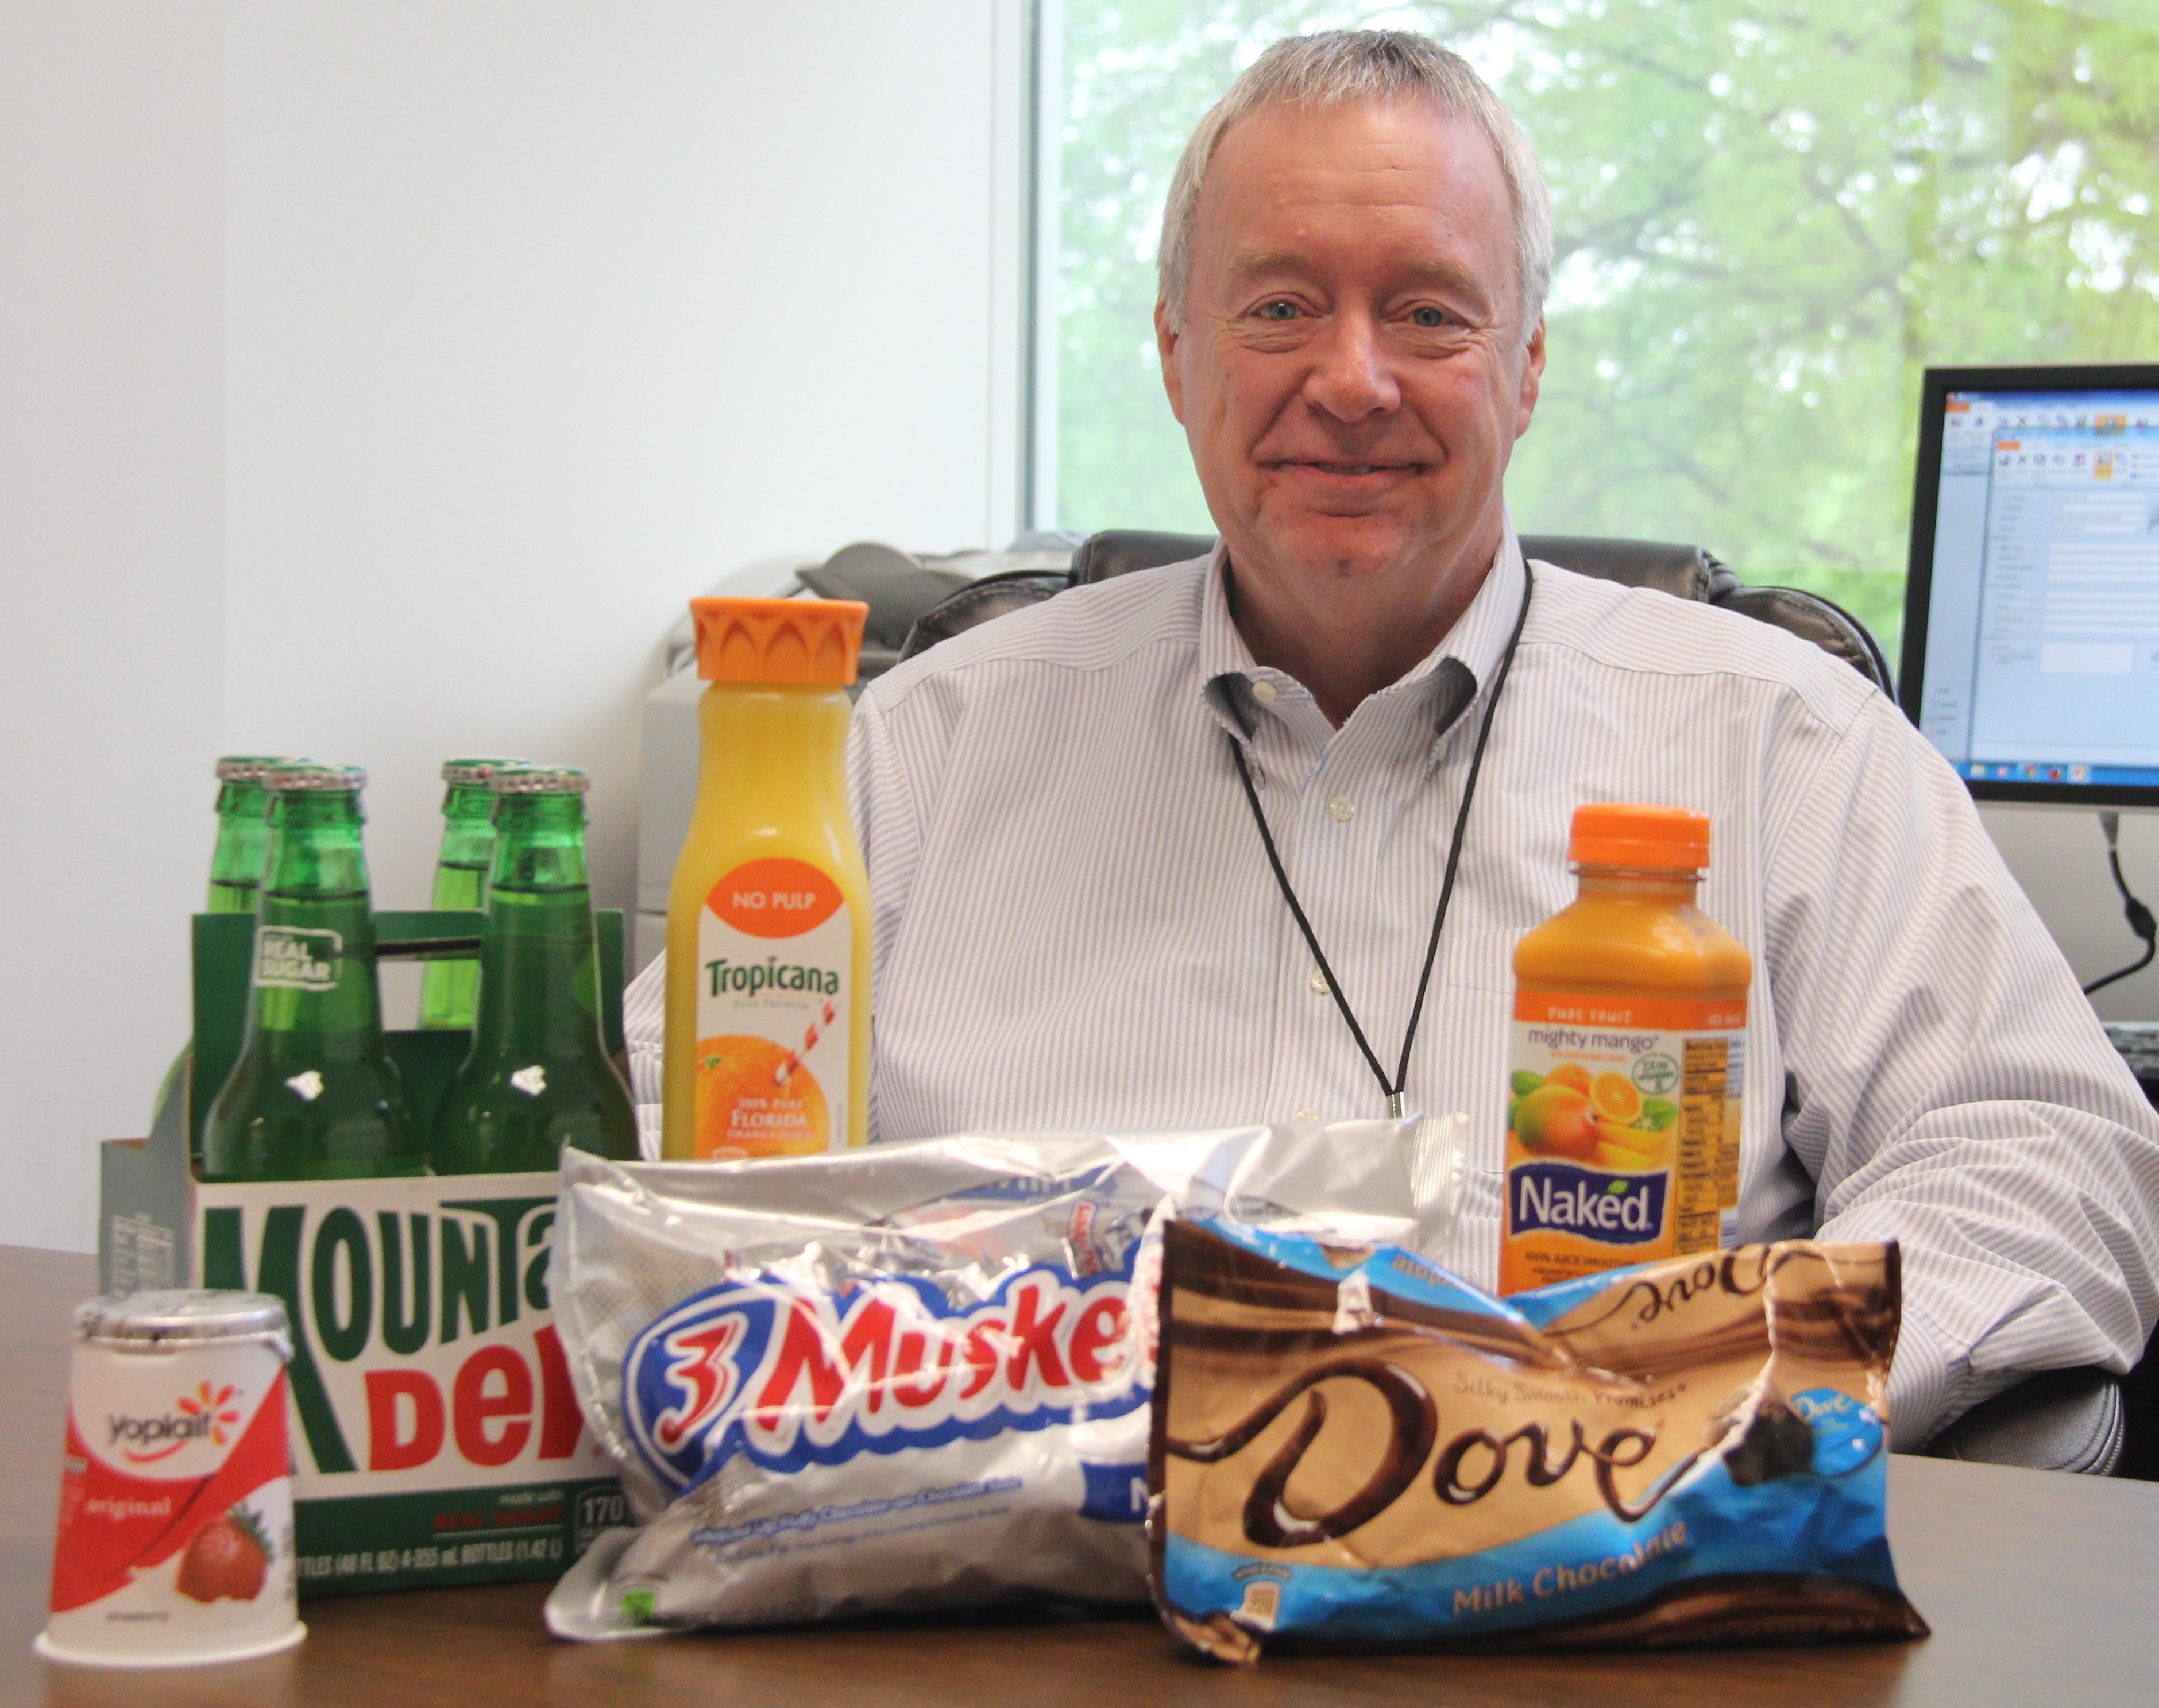 Kirk Kealey, the new director of the University of Georgia' Food PIC Center, has launched more than 200 products, most of them beverages like a Mountain Dew for Russia, an apple soft drink for China and a mango juice drink now sold in Lebanon. Through these experiences he learned the numerous steps necessary to create a product consumers will accept.